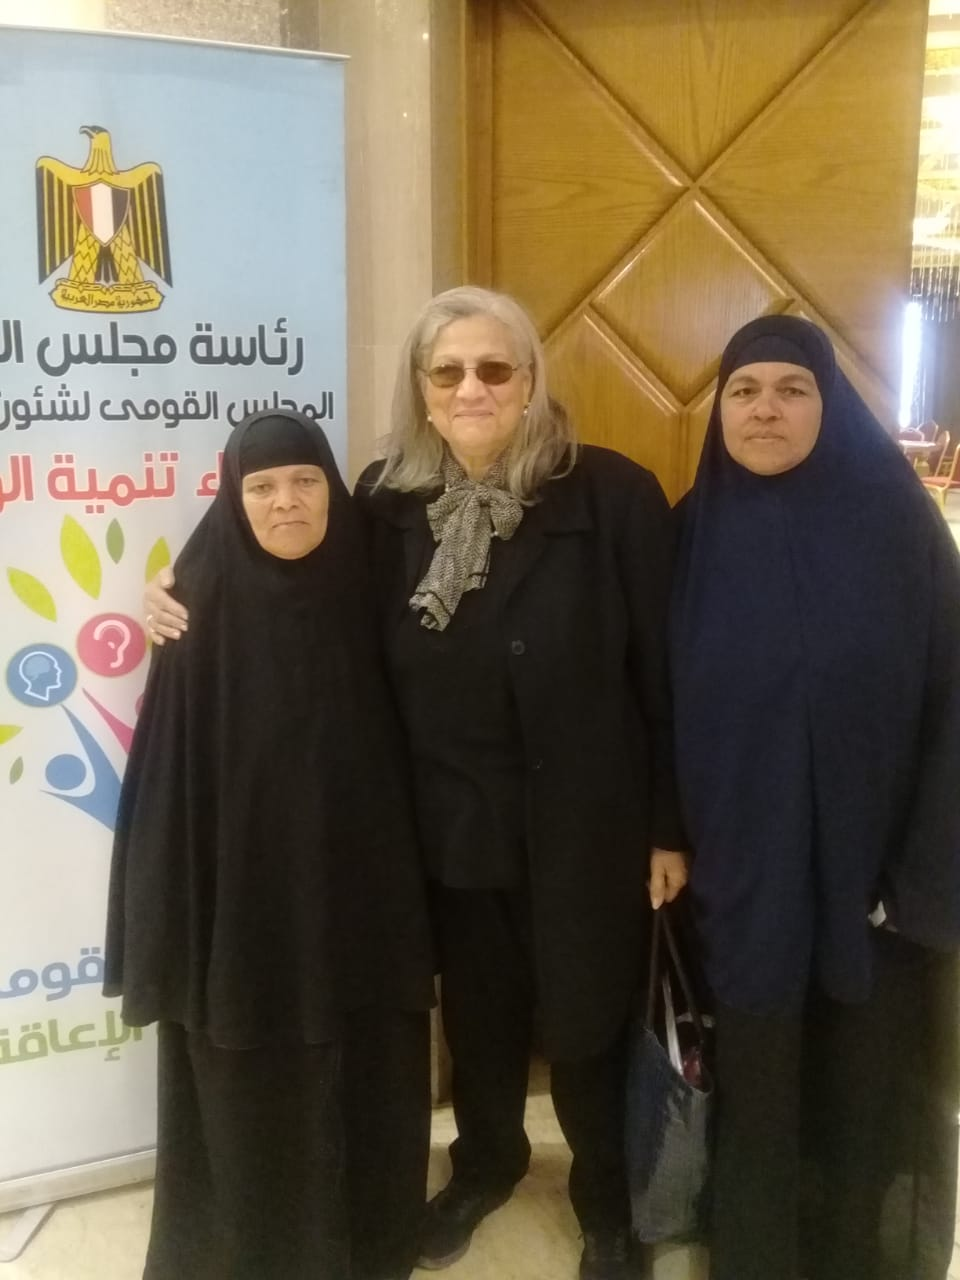 Meeting with the president and authorities concerning the Rights of people with Disabilities in Egypt